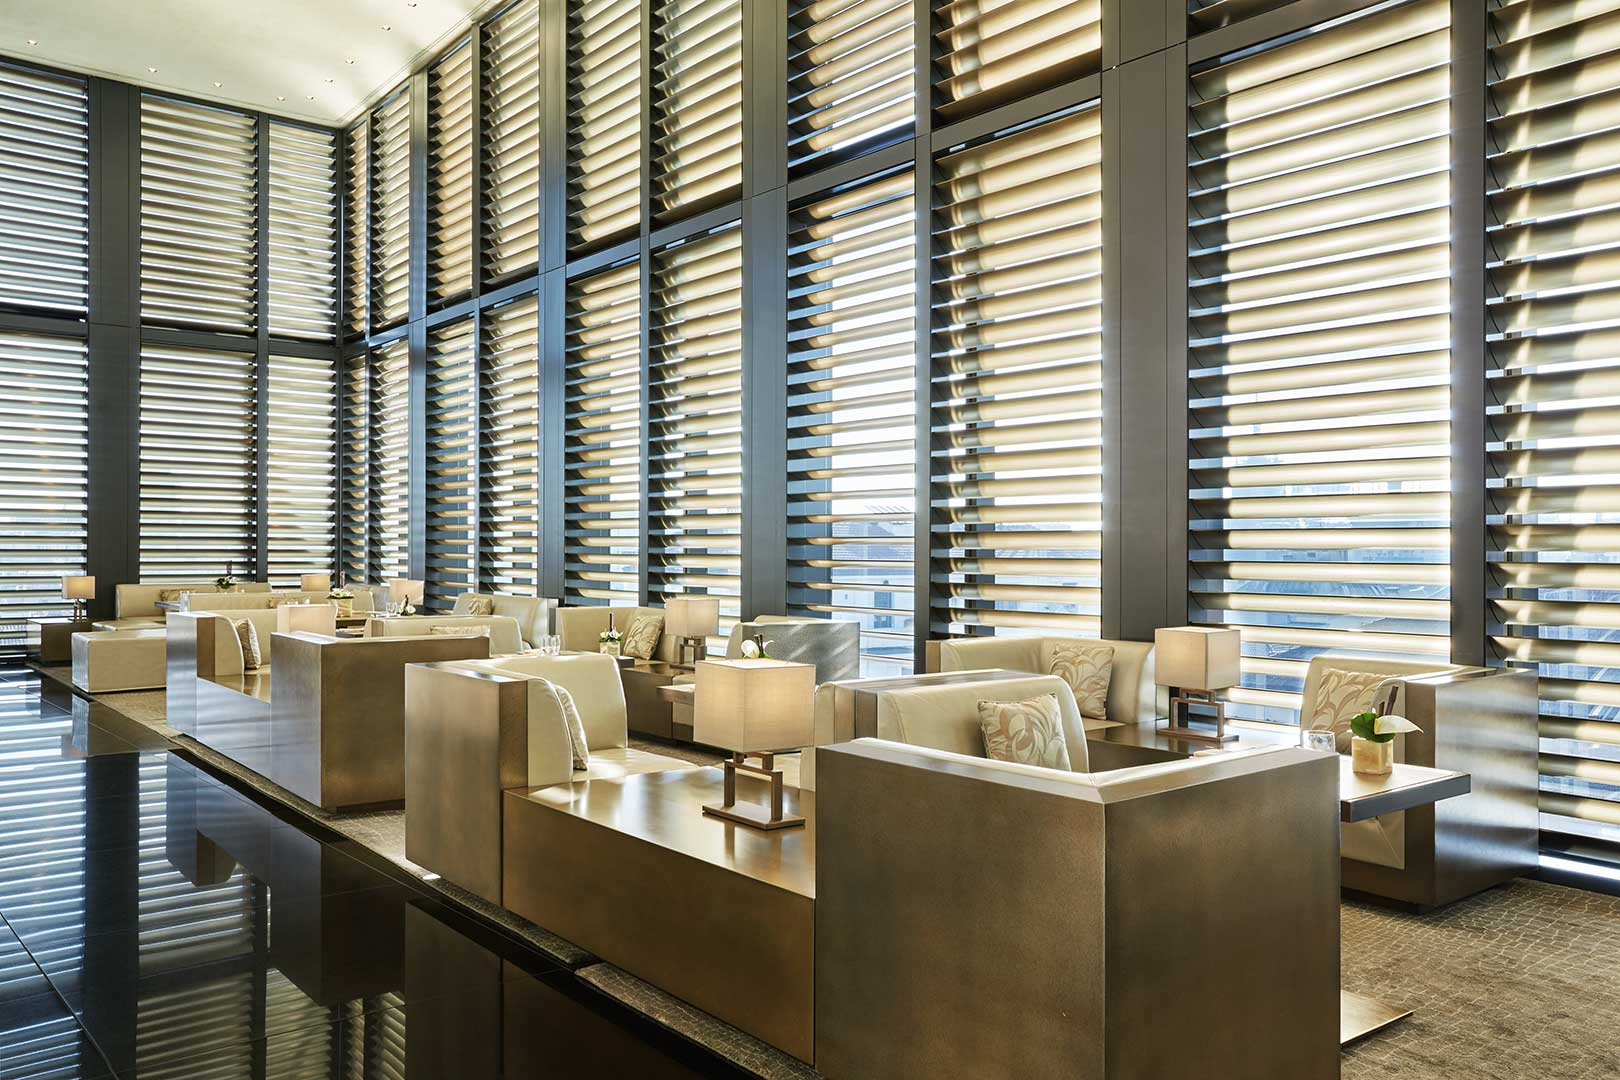 Armani Hotel Milano Flawless - Lifestyle Guide